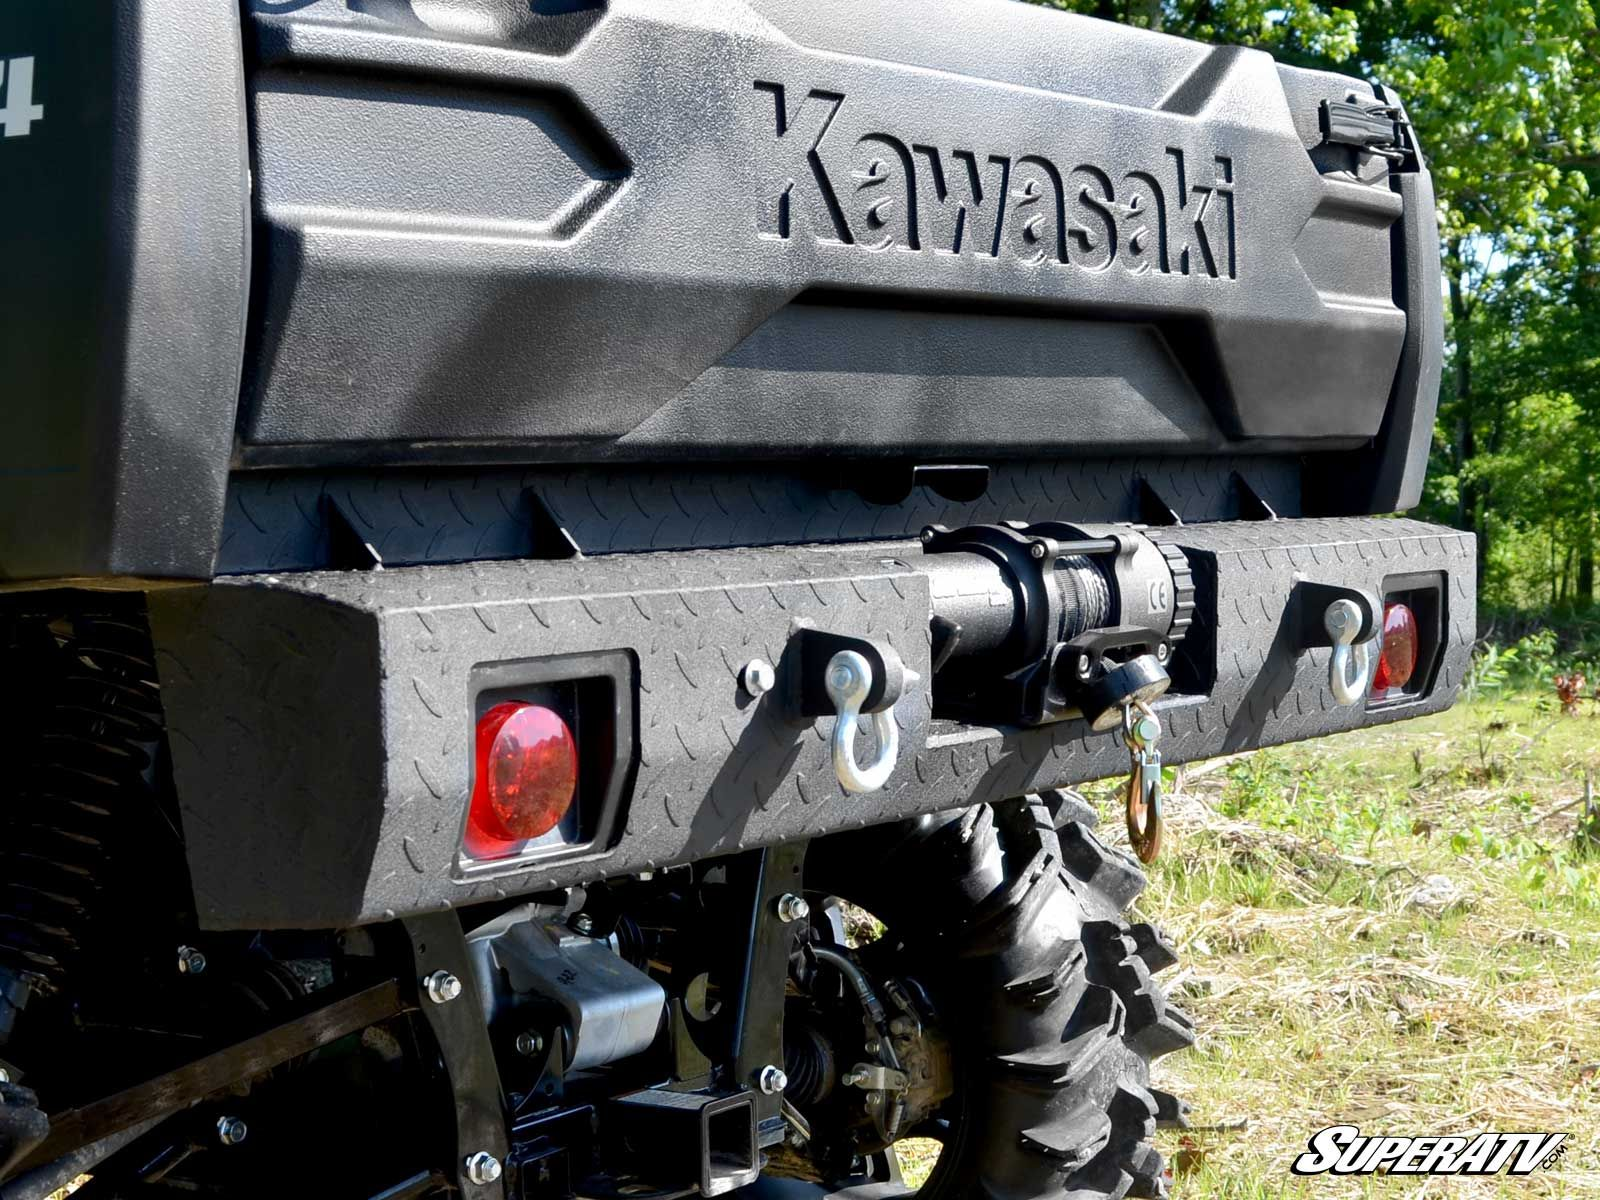 Kawasaki Mule Price Guide